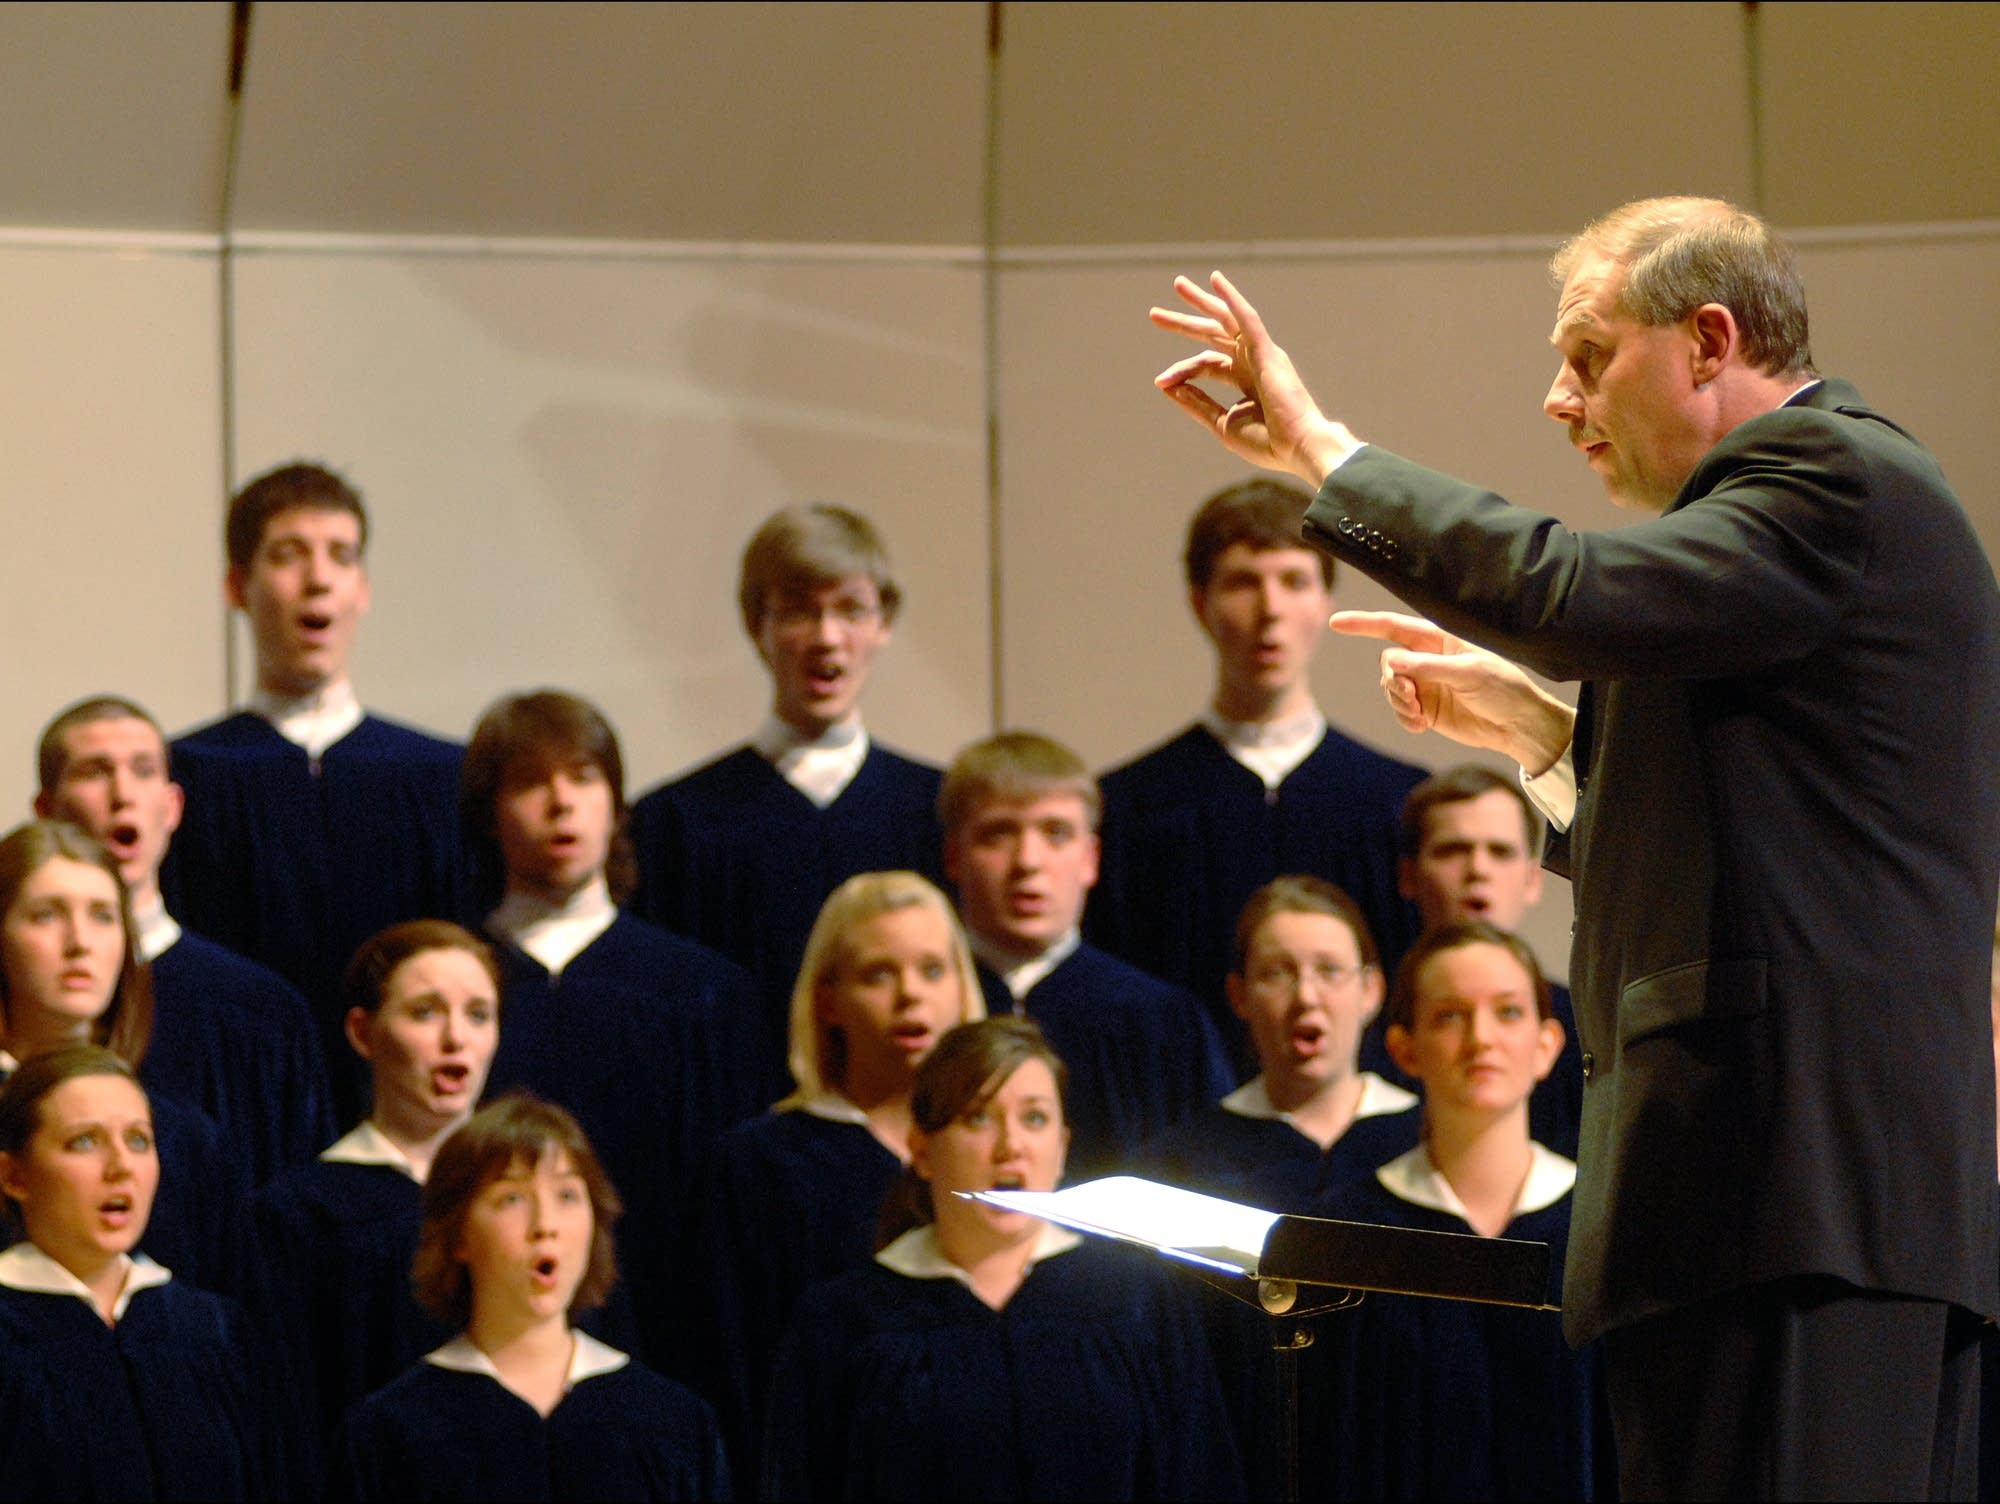 Rene Clausen conducts the Concordia Choir in 2008.